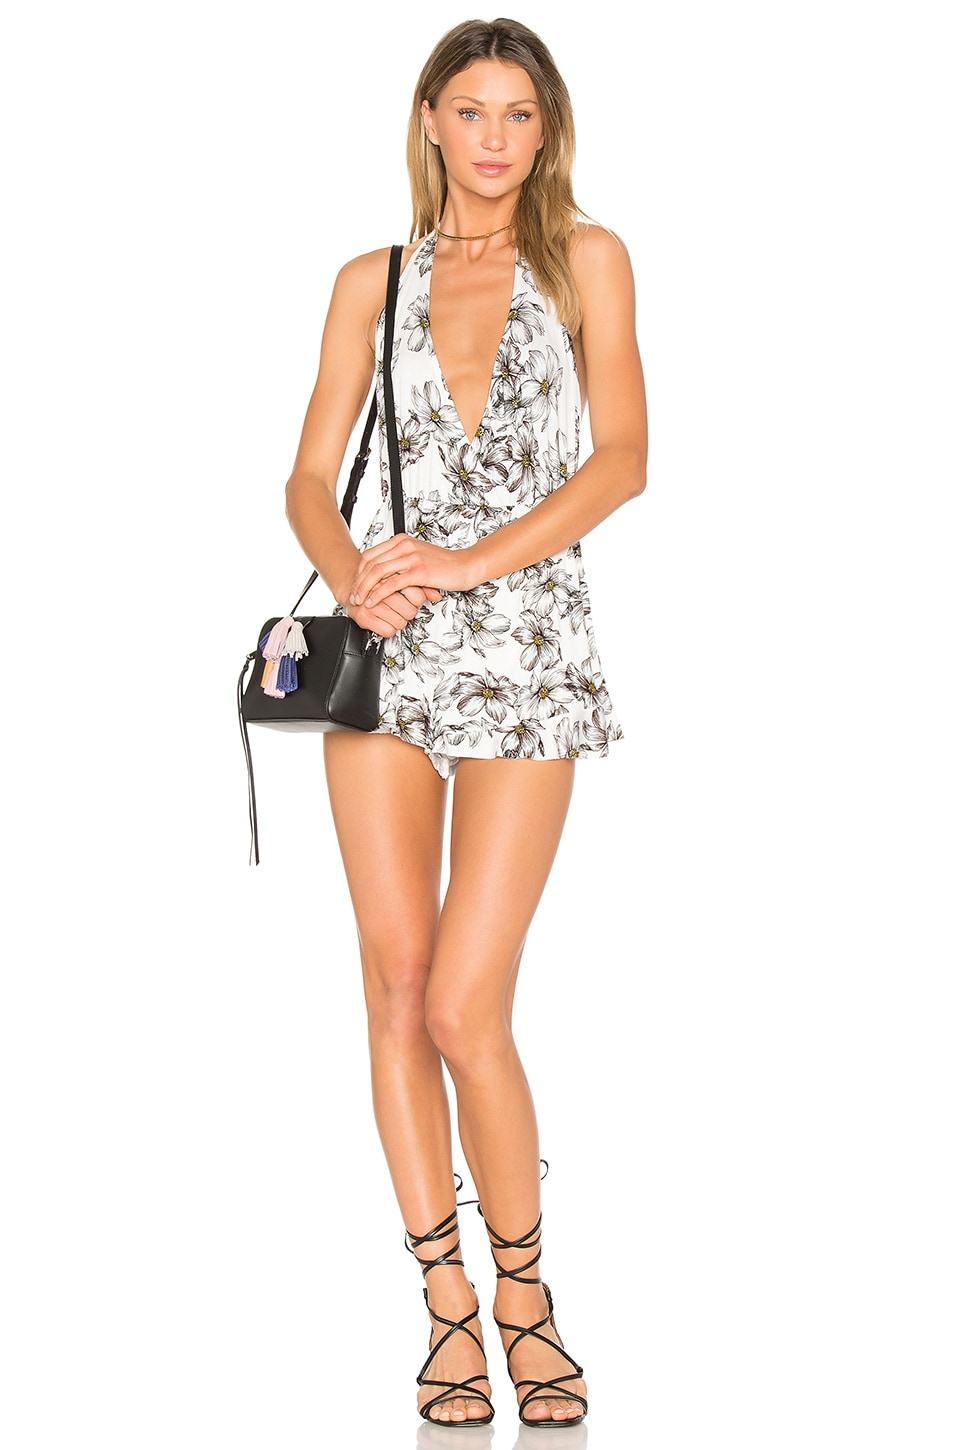 Clayton Helina Playsuit in Light Blue Floral Sketch